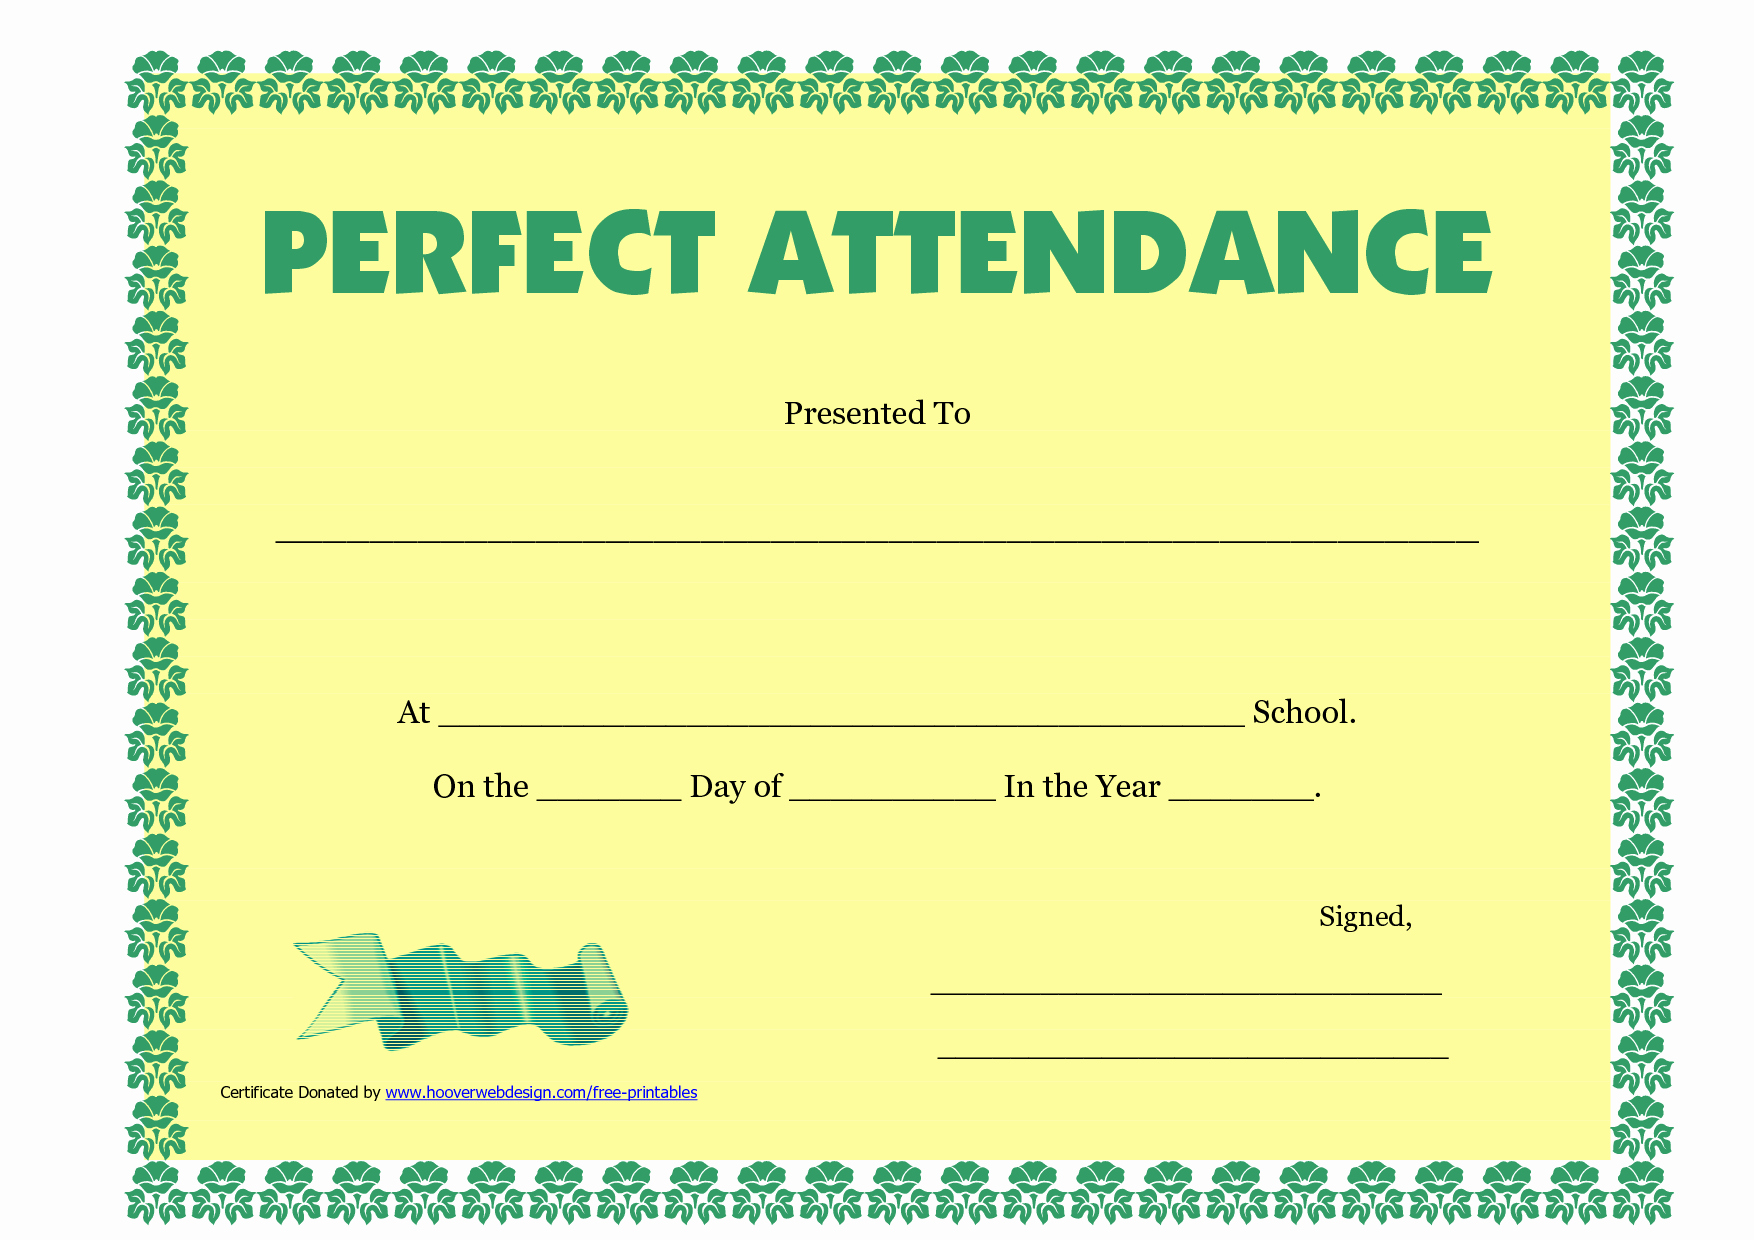 Perfect attendance Certificate Template Bamboodownunder